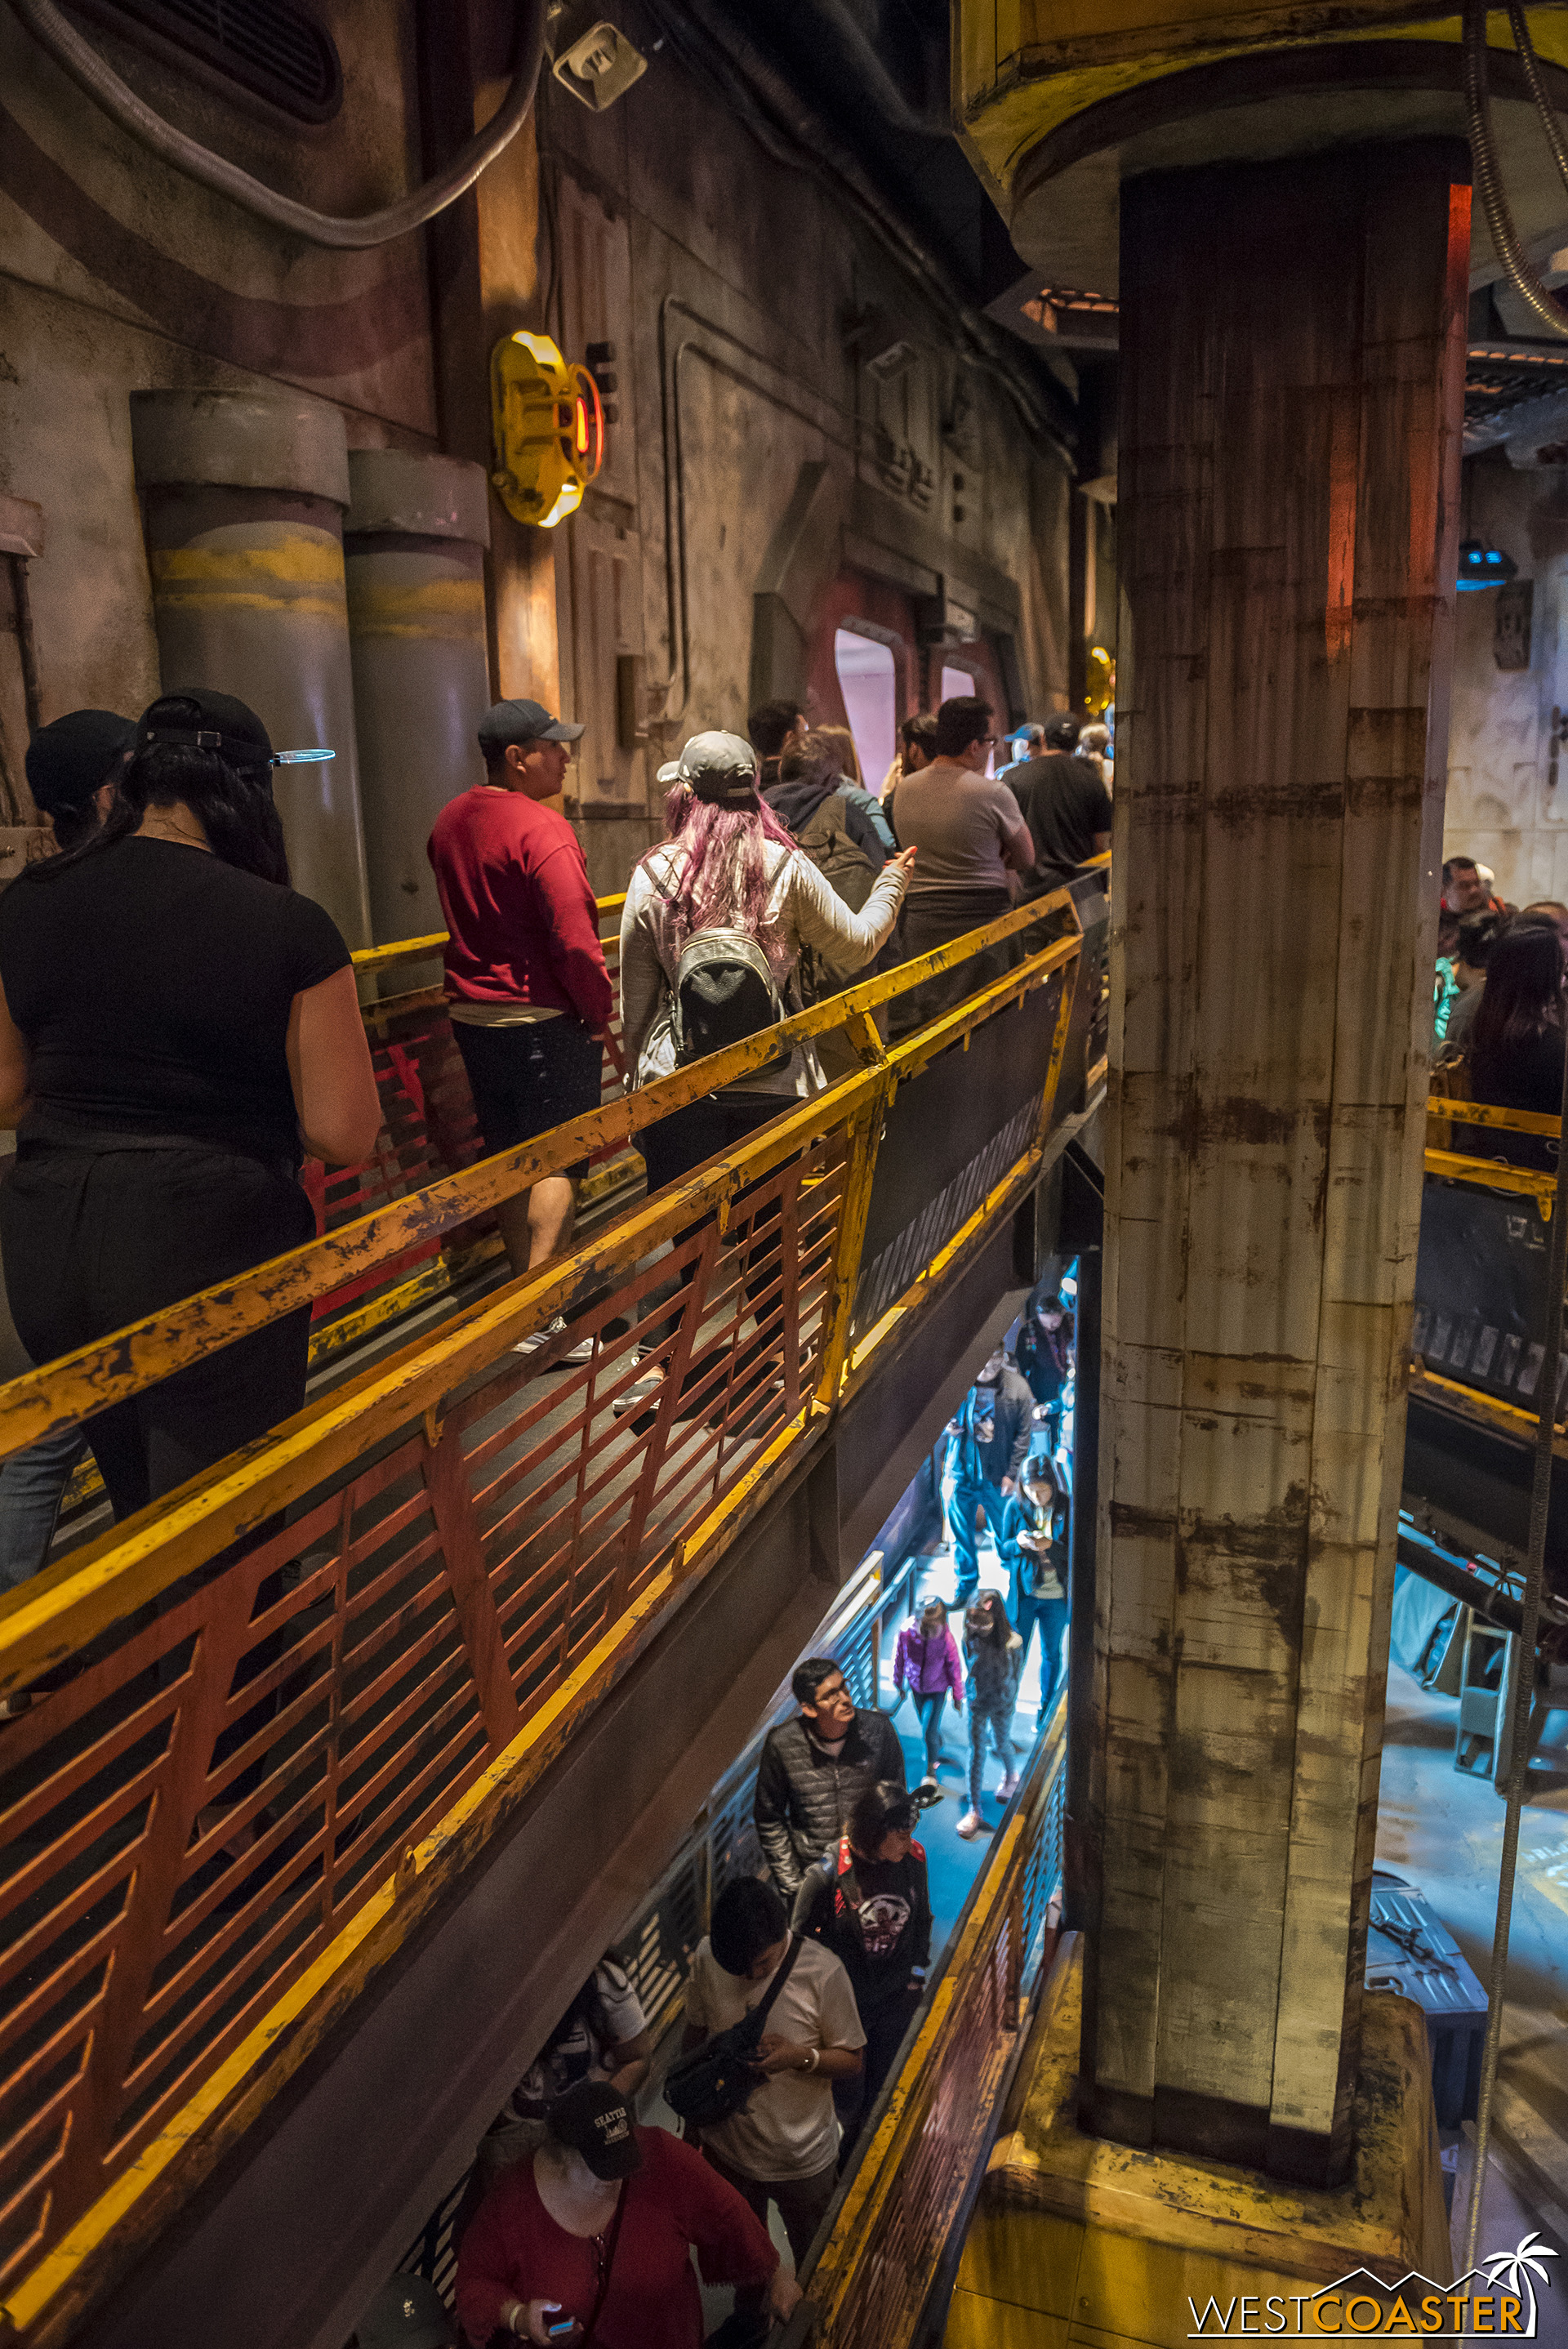 The entire line of Smuggler's Run is wheelchair accessible, which is nice, because disabled people can experience the same sights and sounds as everyone else.